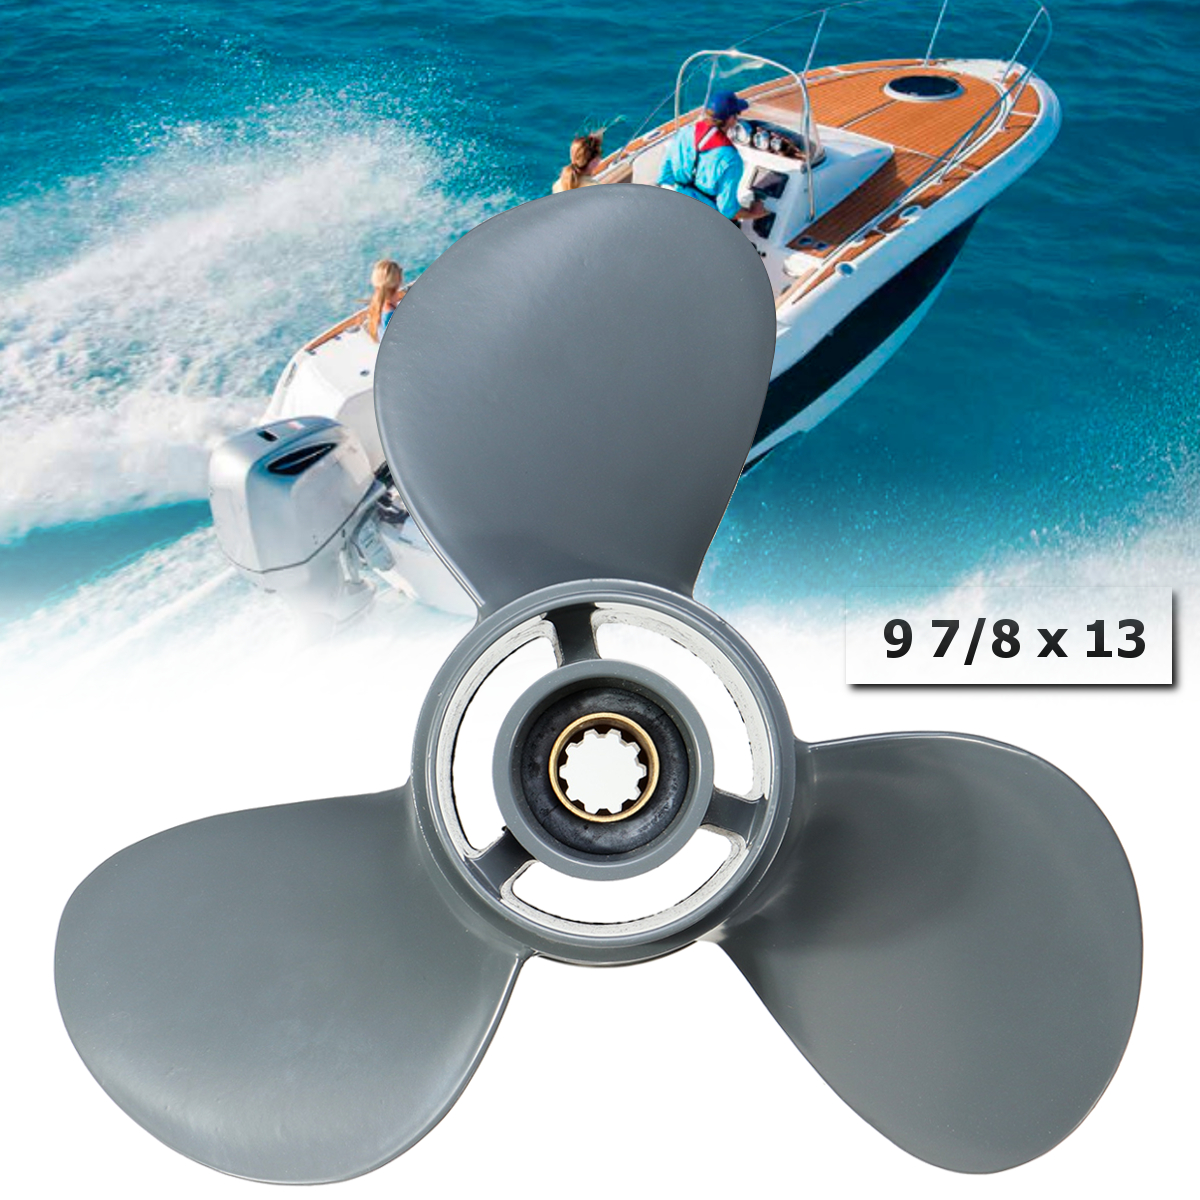 58130-ZV7-013AH 9 7/8 x 13 Aluminum Alloy Boat Outboard Propeller For Honda 25-30HP Gray 3 Blades 10 Spline Tooths R Rotation цены онлайн